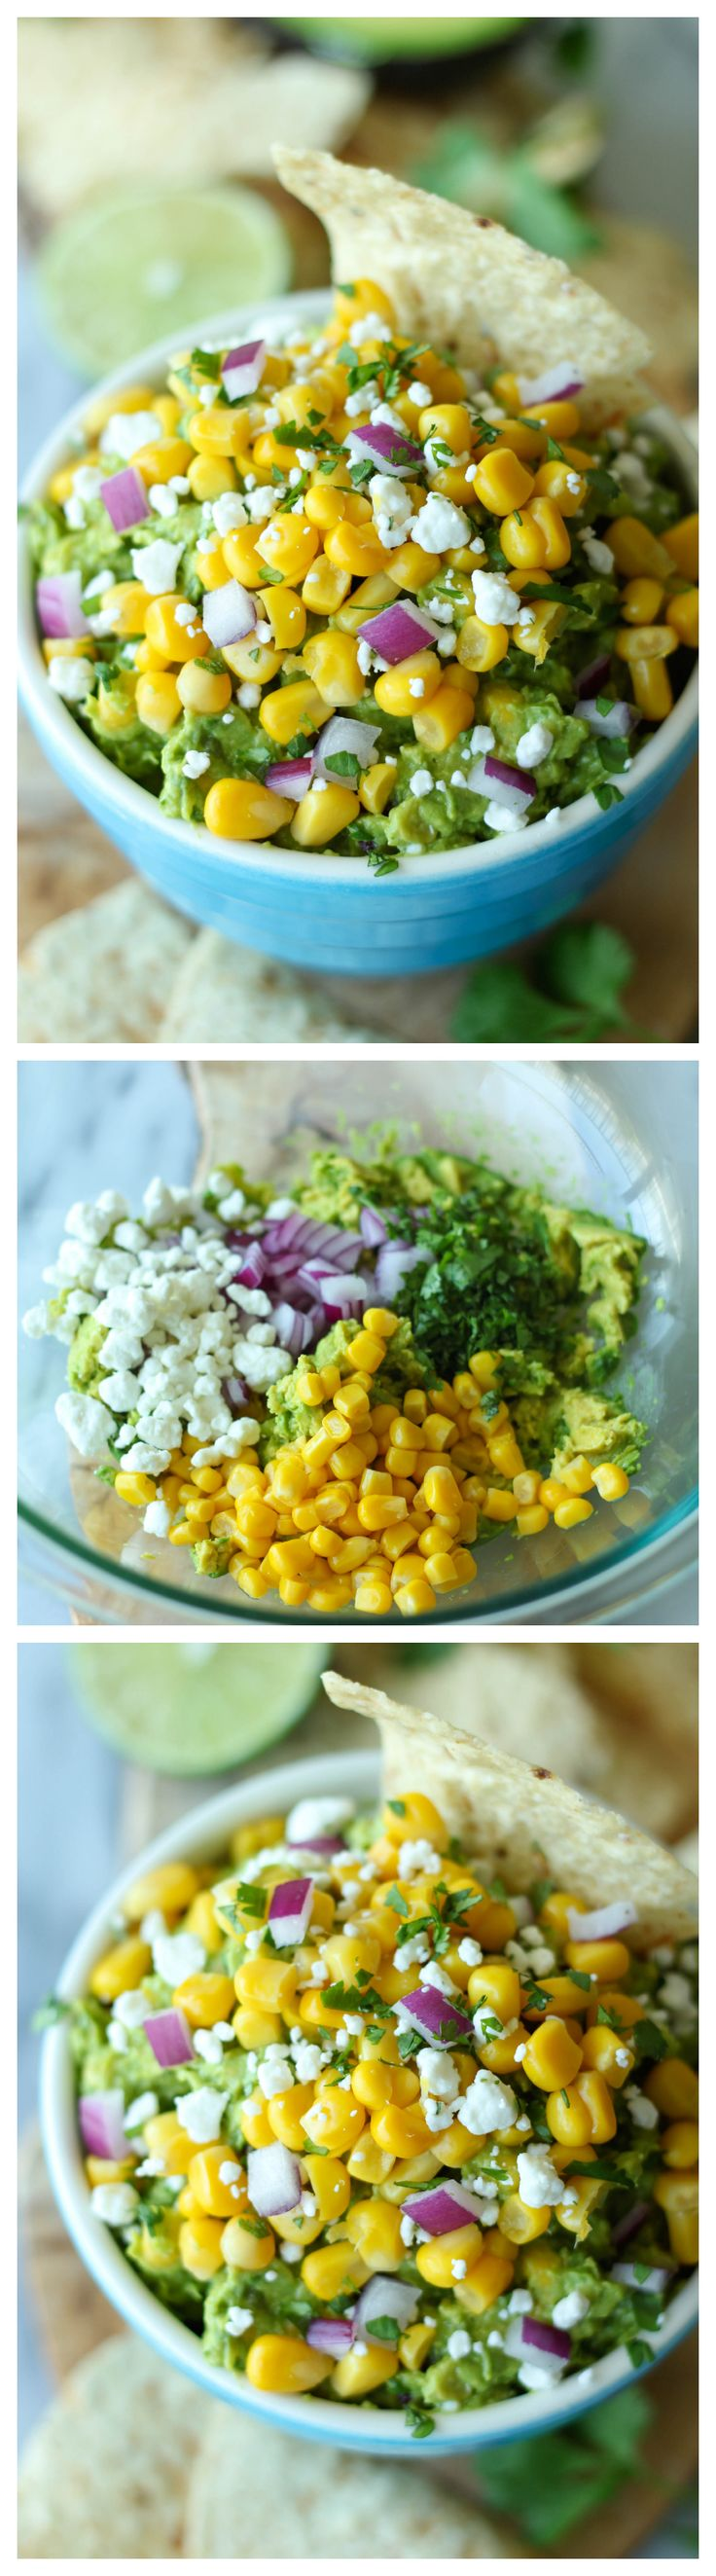 Sweet Corn Grilled Guacamole - Grilled avocados add that extra special touch to this creamy, sweet guacamole!